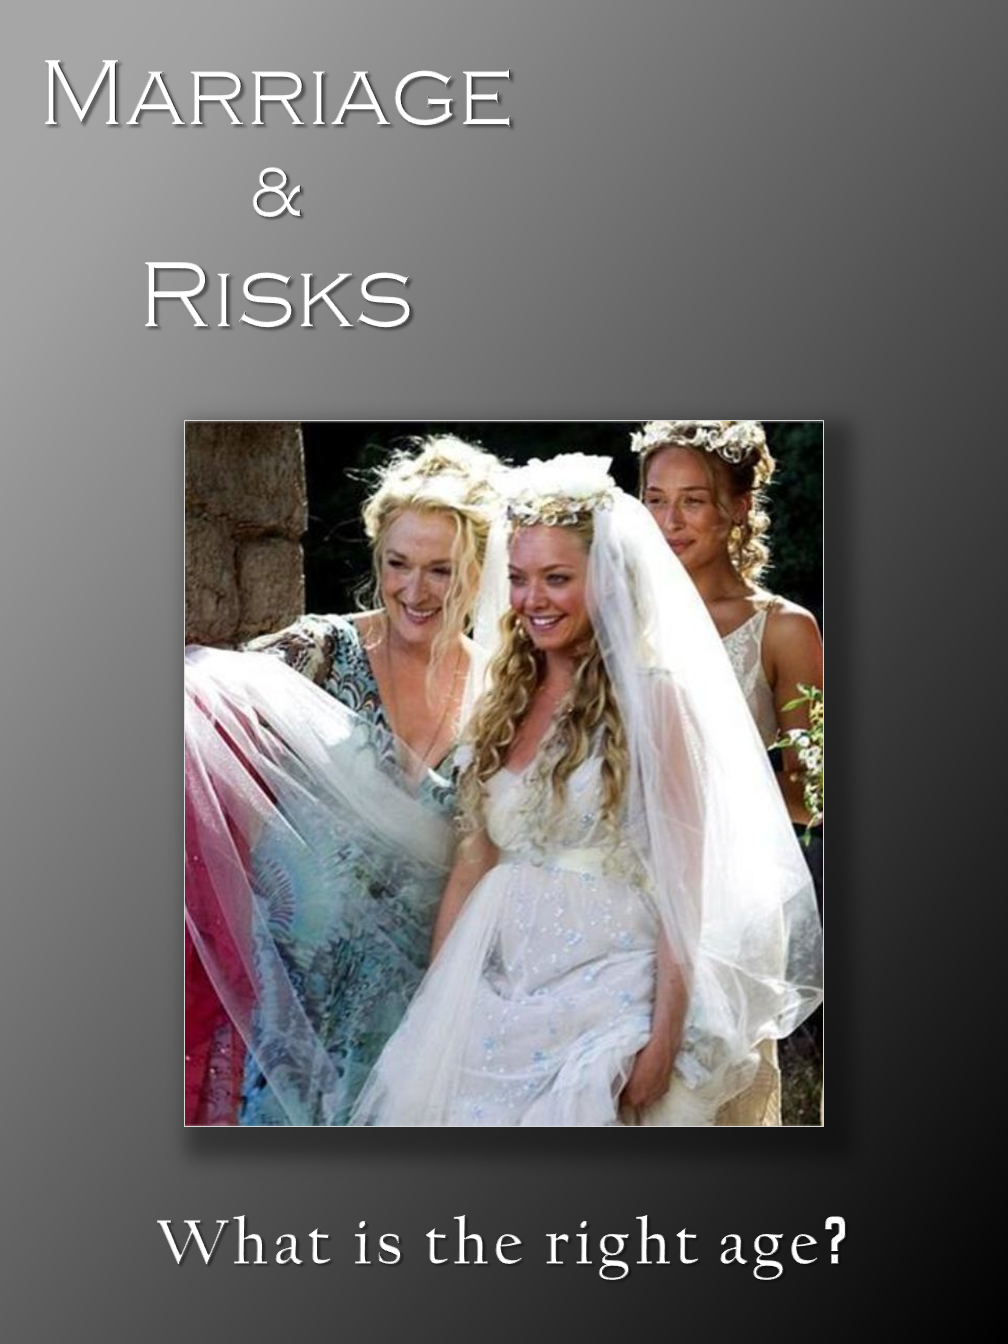 Marriage & Risks